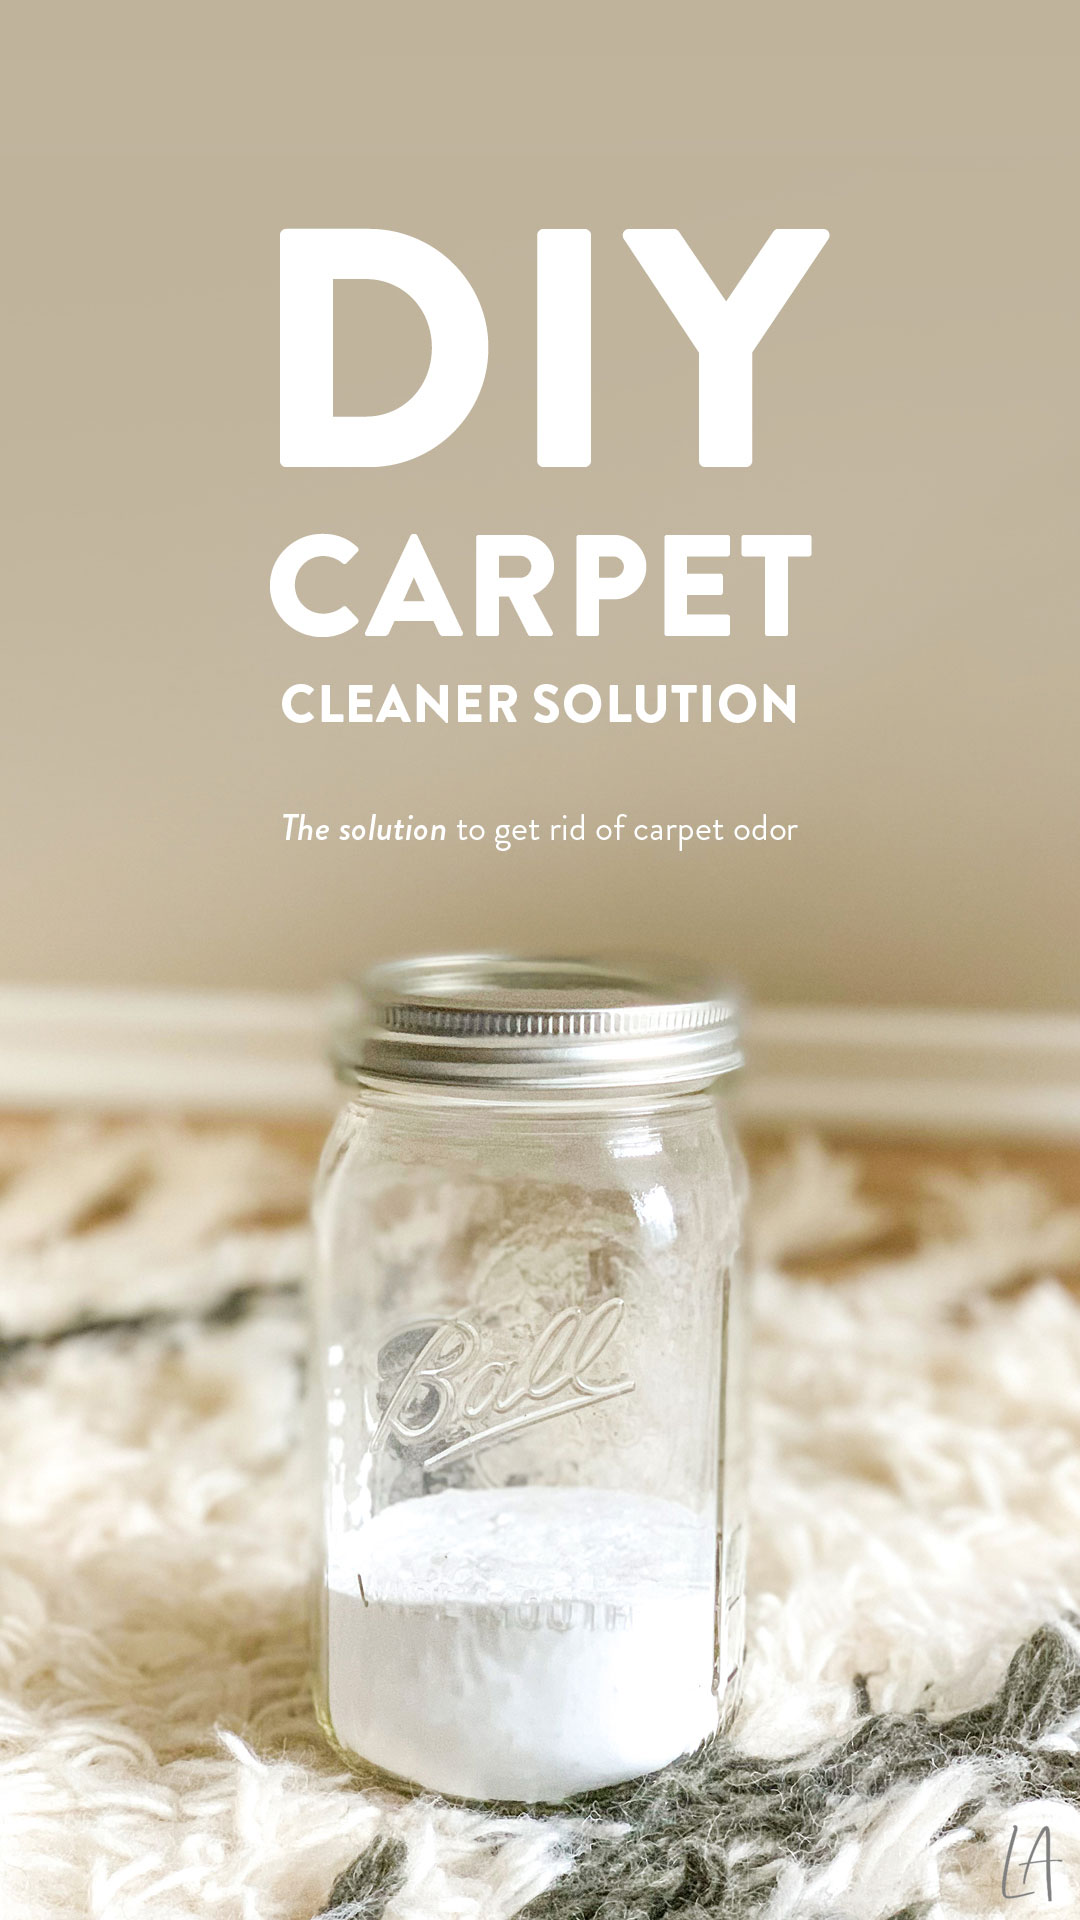 DIY Carpet Cleaner Solution - The best way to get rid of carpet odor